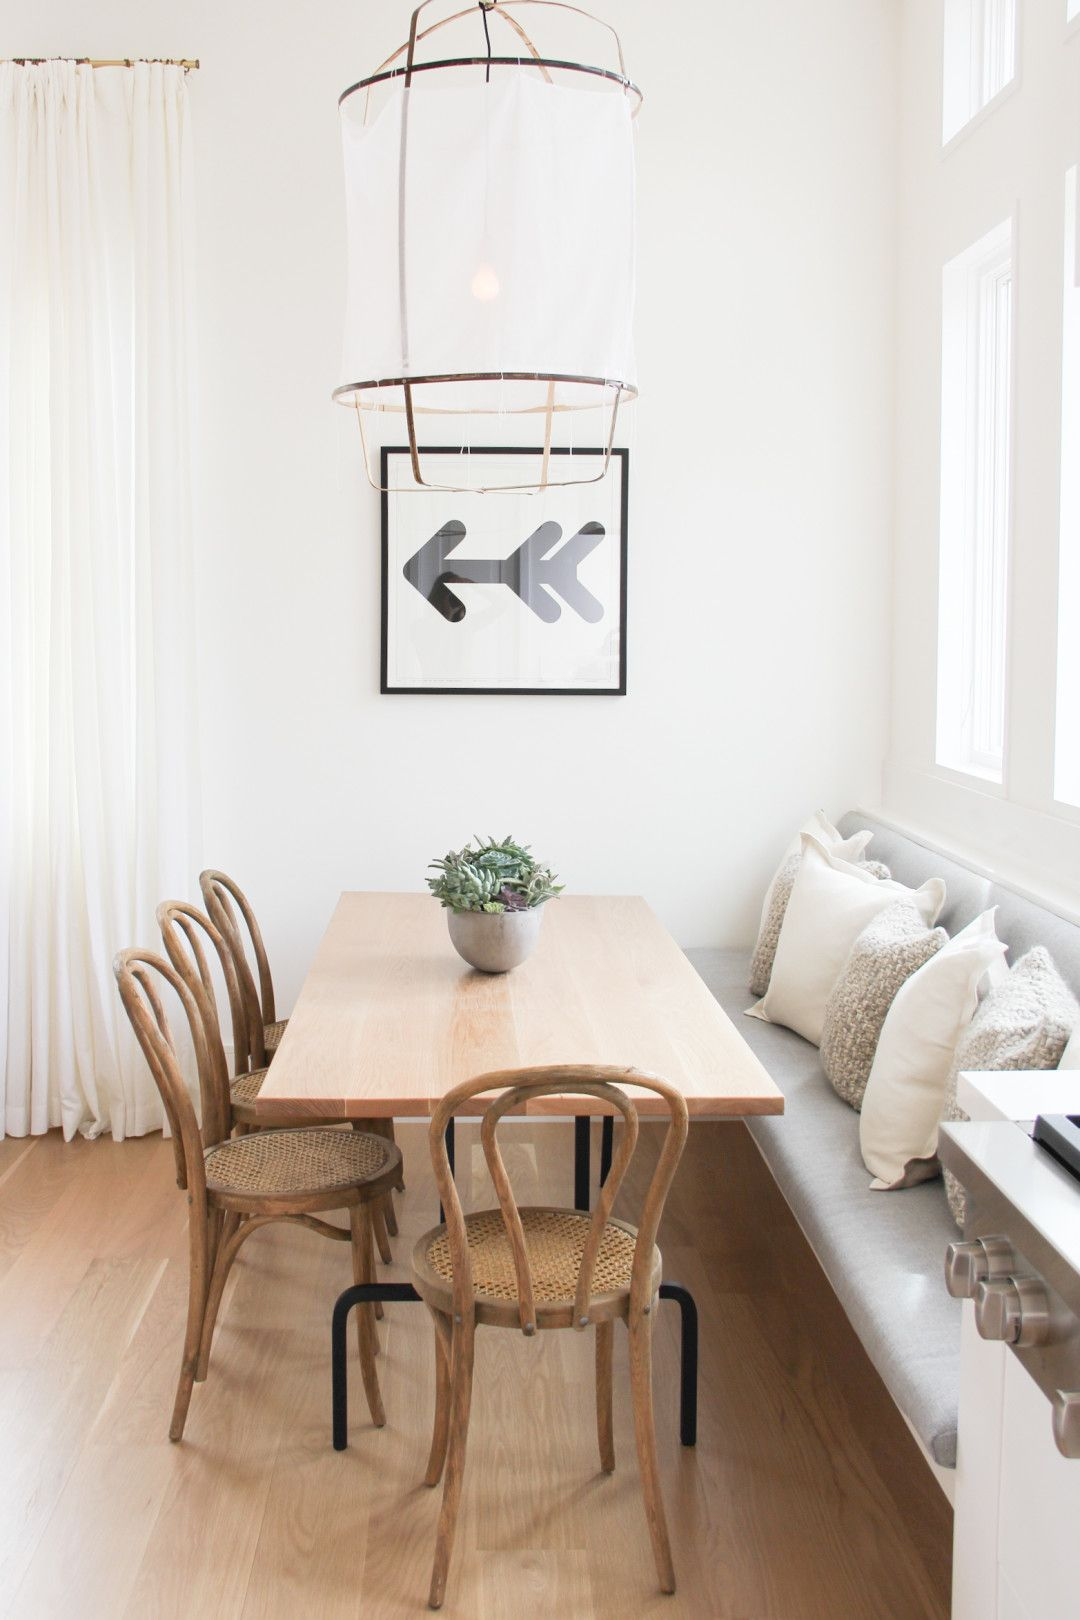 Built In Bench And A Natural Vibe This Little Dining Nook Great Space